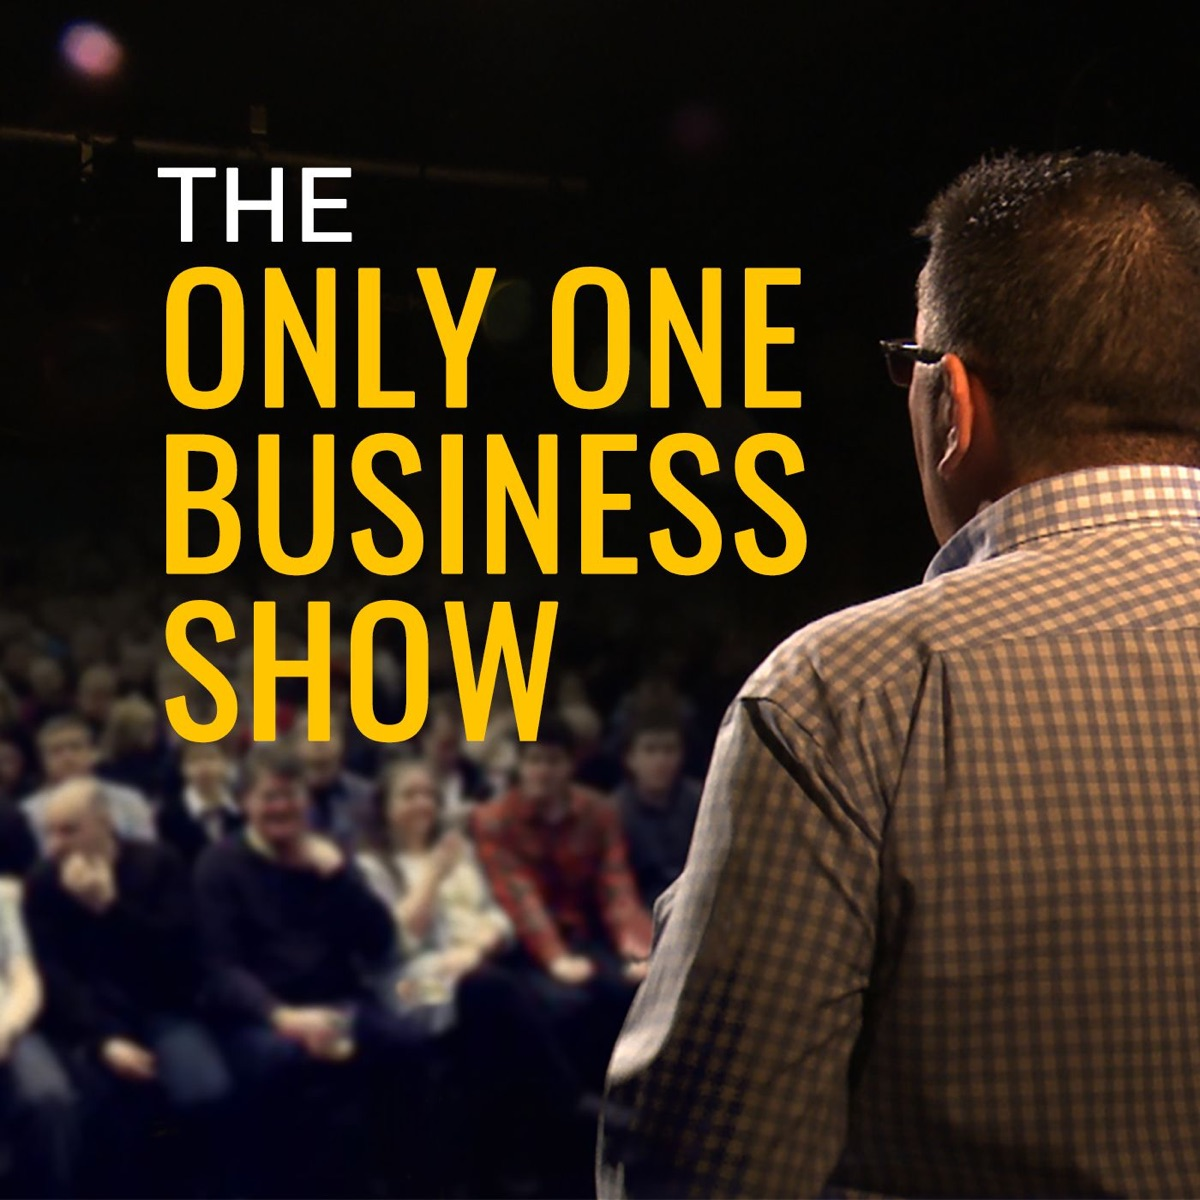 The Only One Business Show